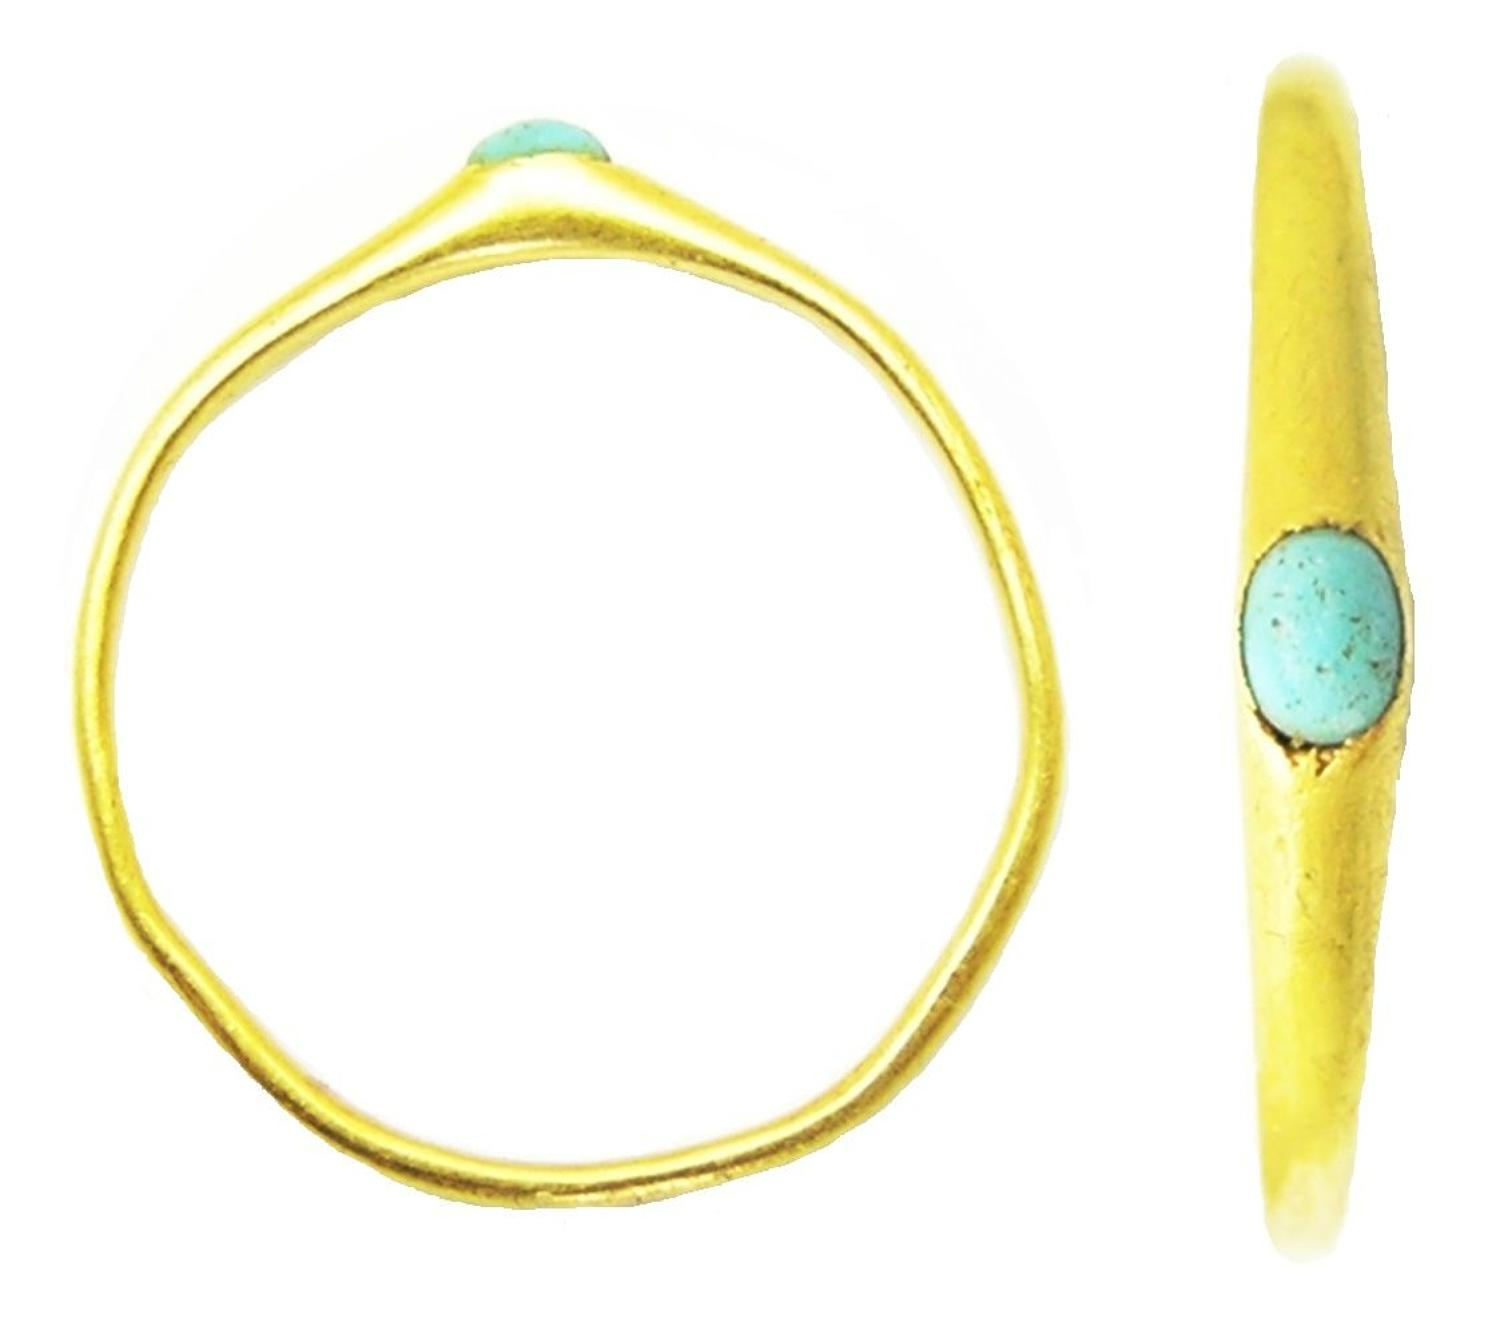 Medieval gold stirrup ring turquoise gemstone